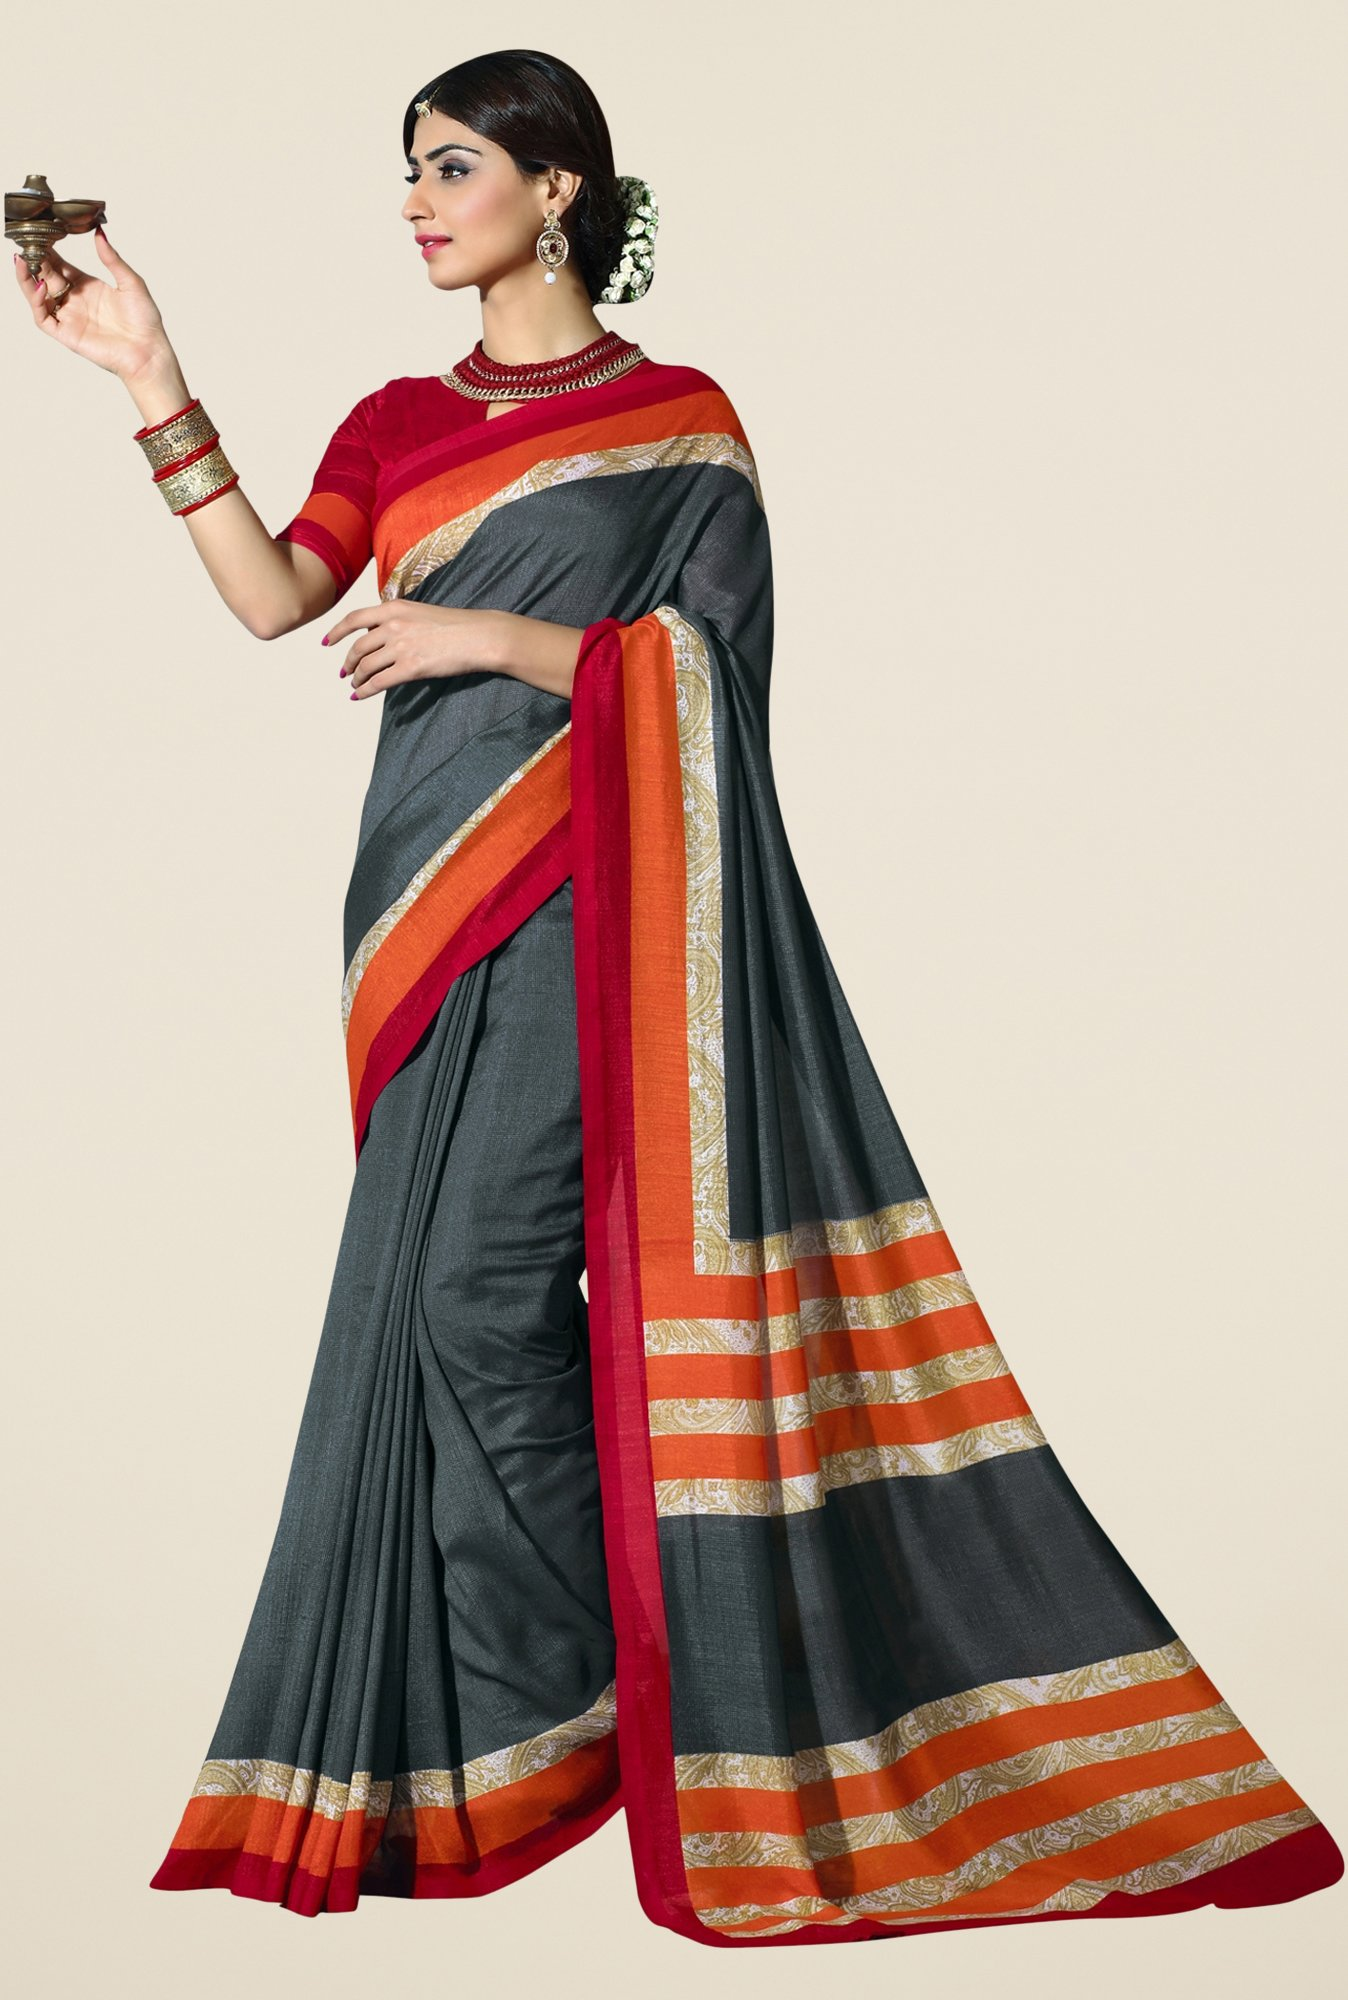 Triveni Grey Textured Silk Saree